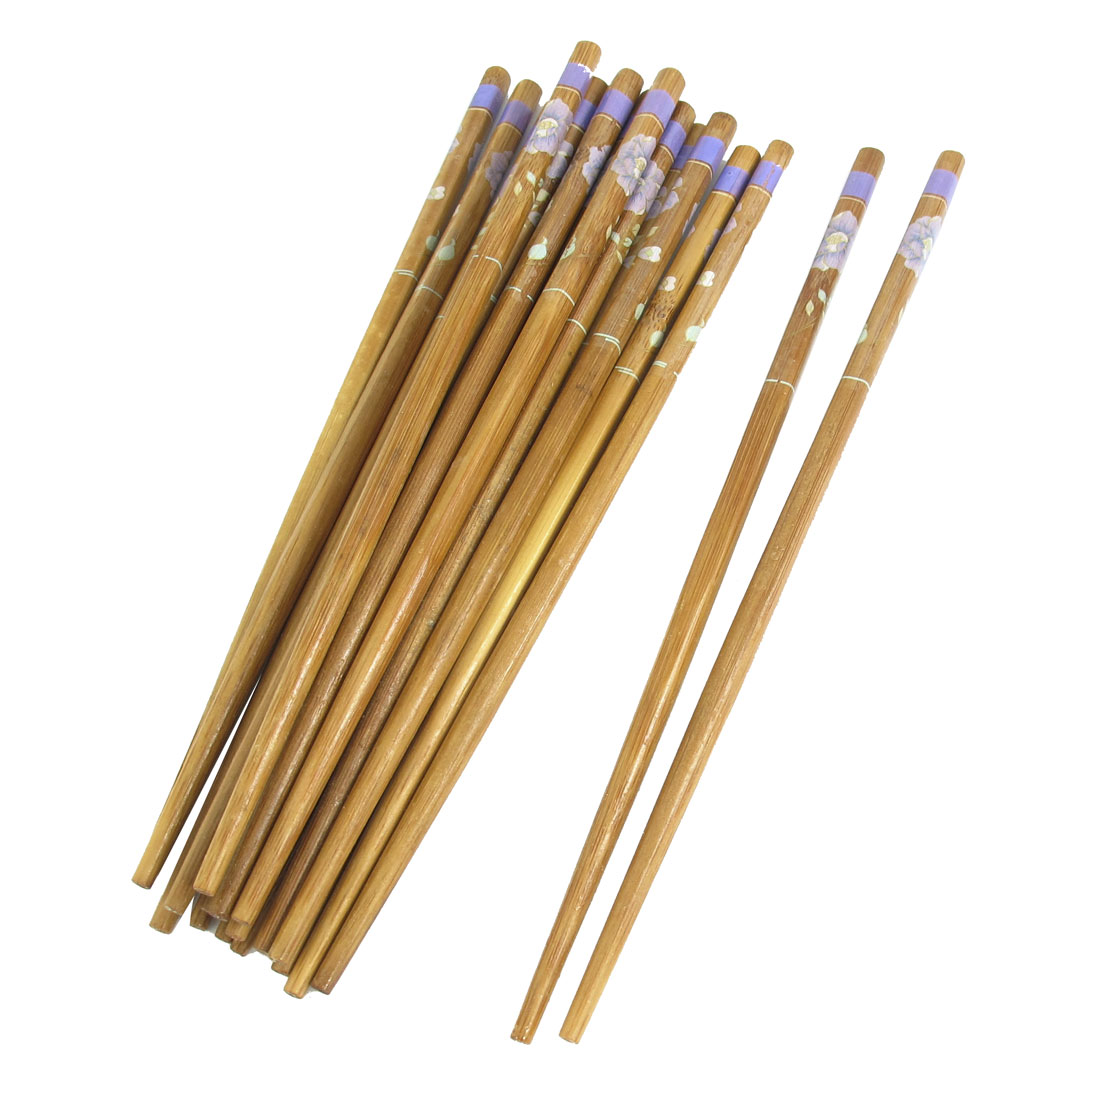 "10 Pairs 9.4"" Length Bamboo Floral Pattern Kitchen Wooden Chopsticks"